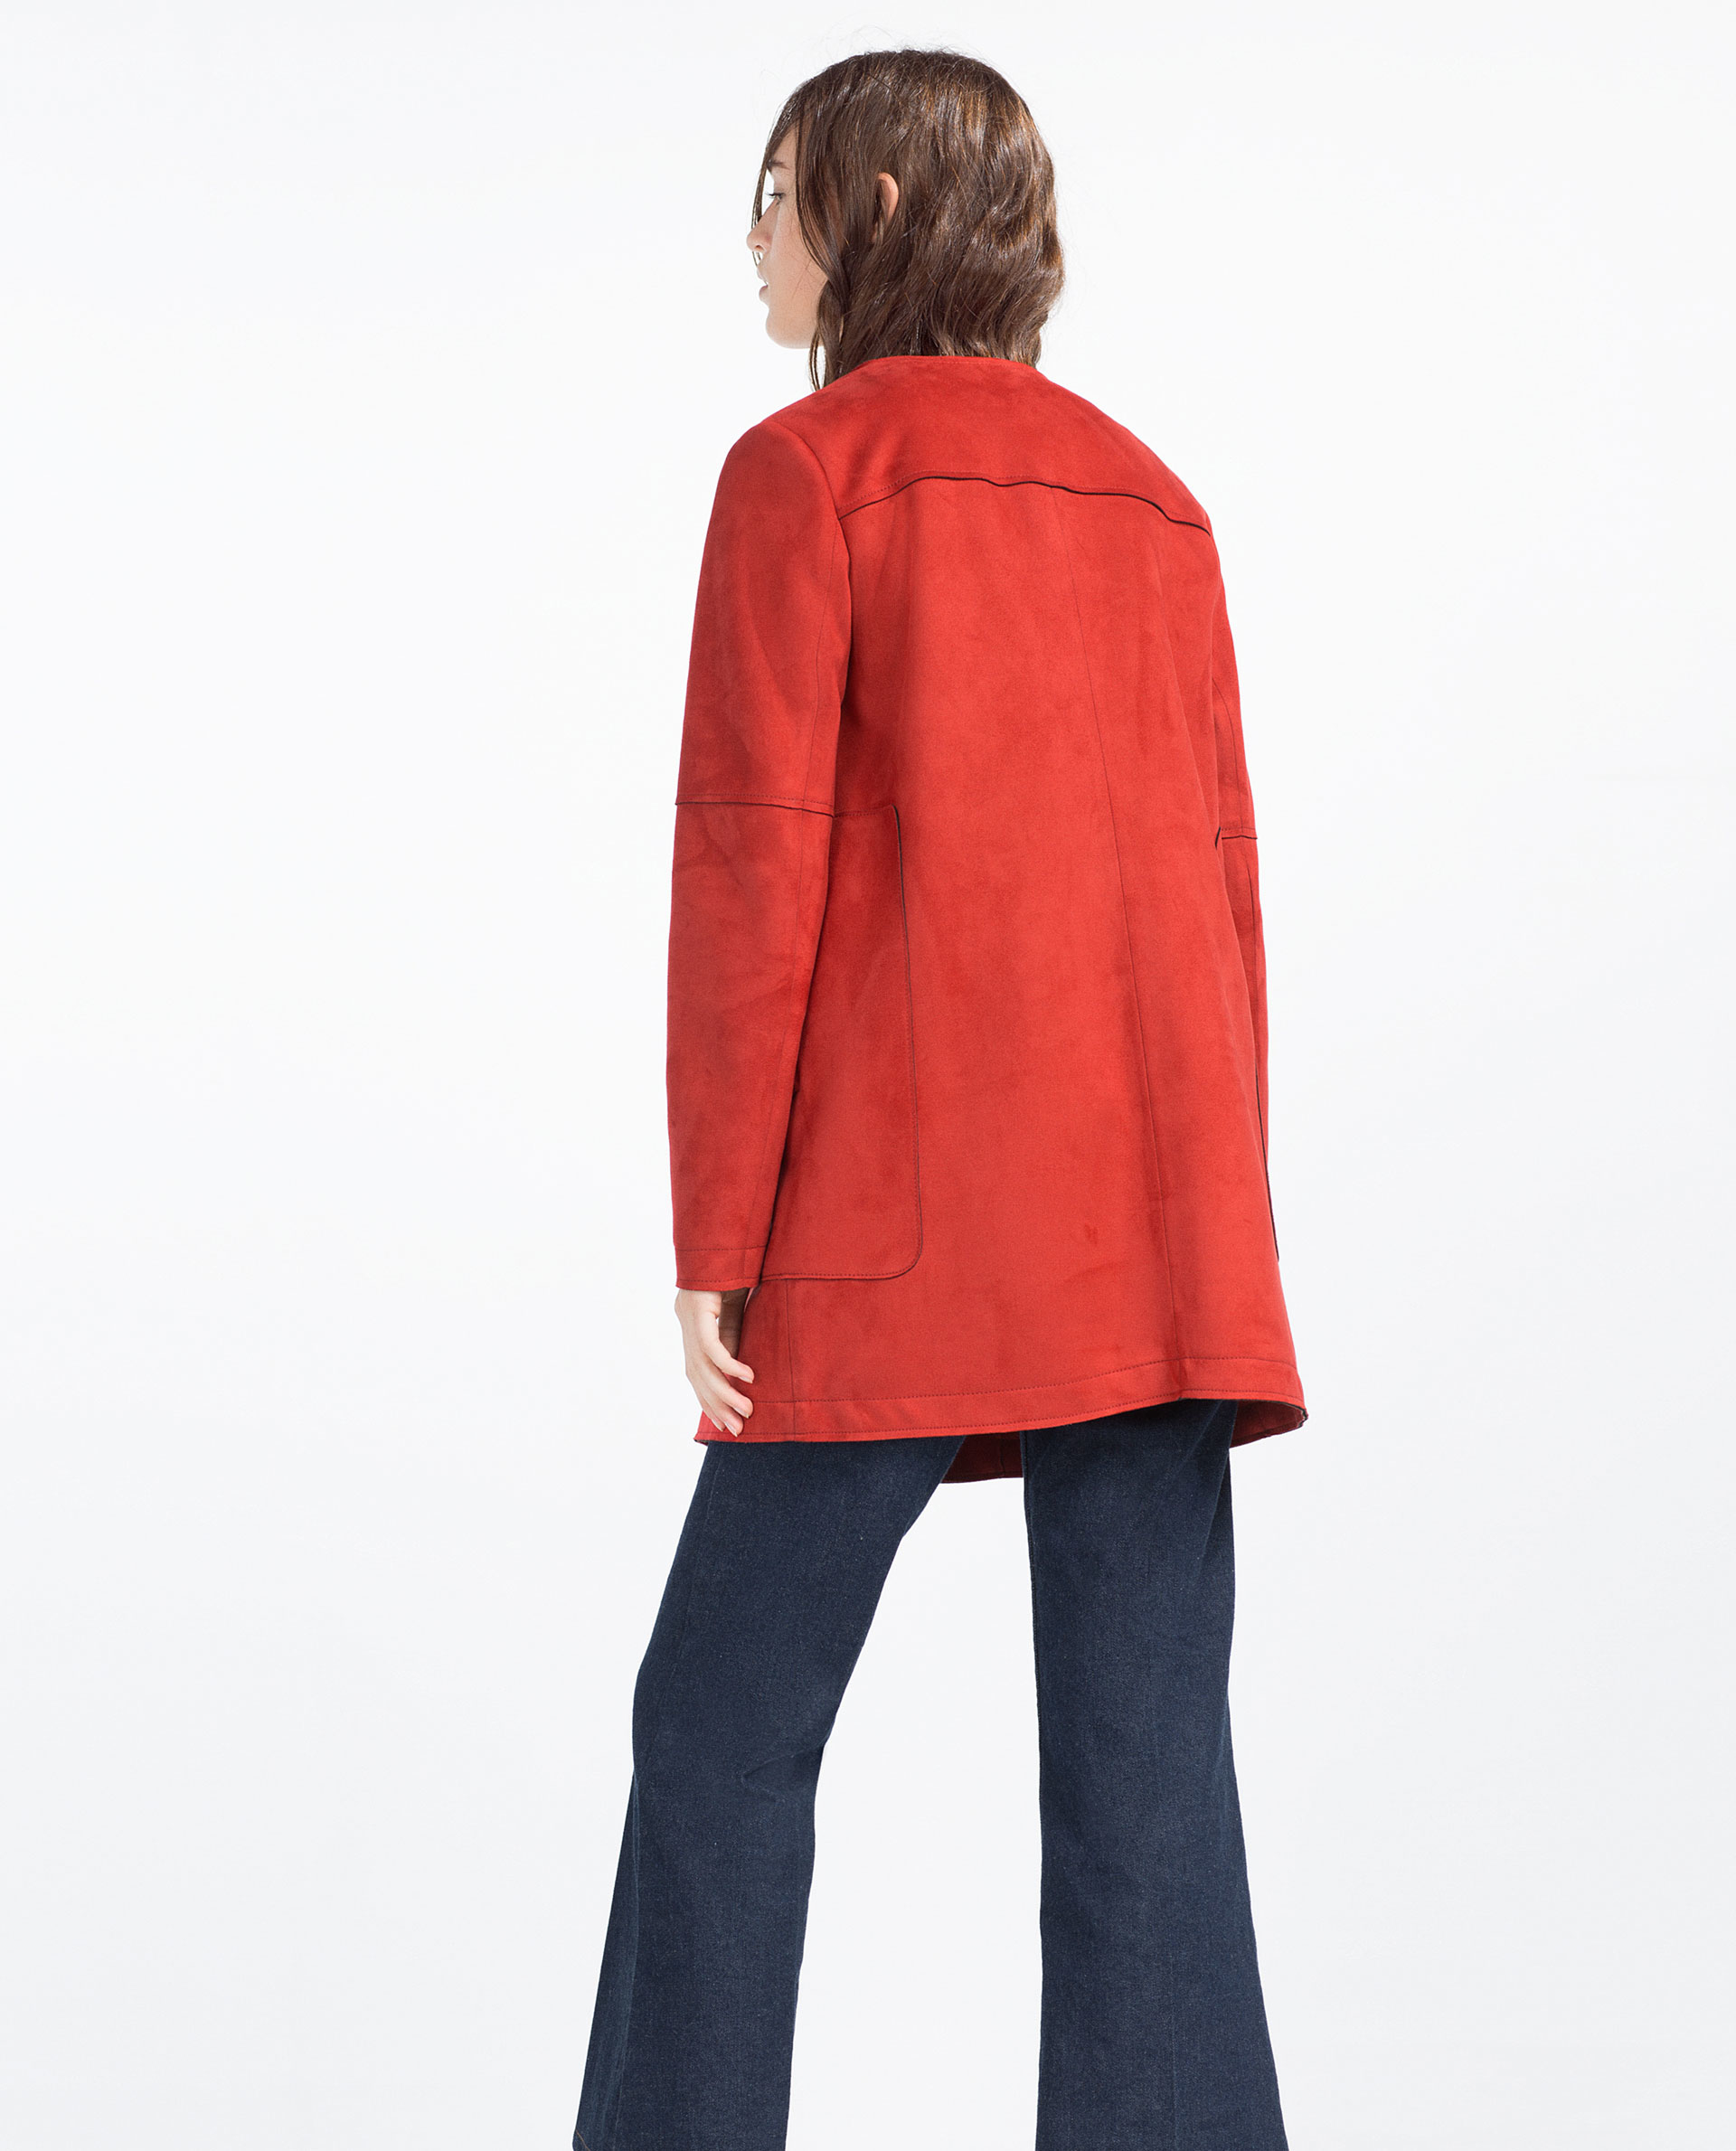 Shop a great selection of Women's Shearling & Suede Coats & Jackets at Nordstrom Rack. Find designer Women's Shearling & Suede Coats & Jackets up to .